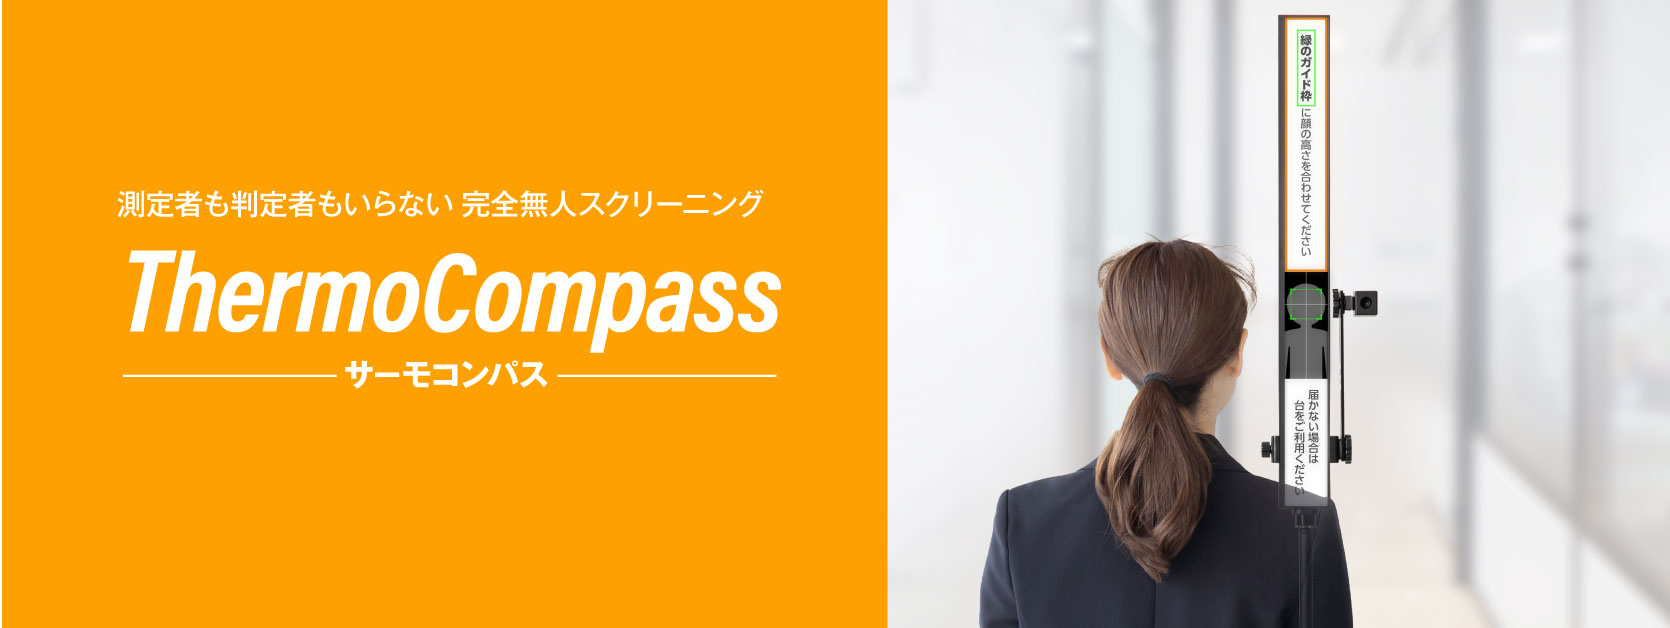 Thermo compass(サーモコンパス)